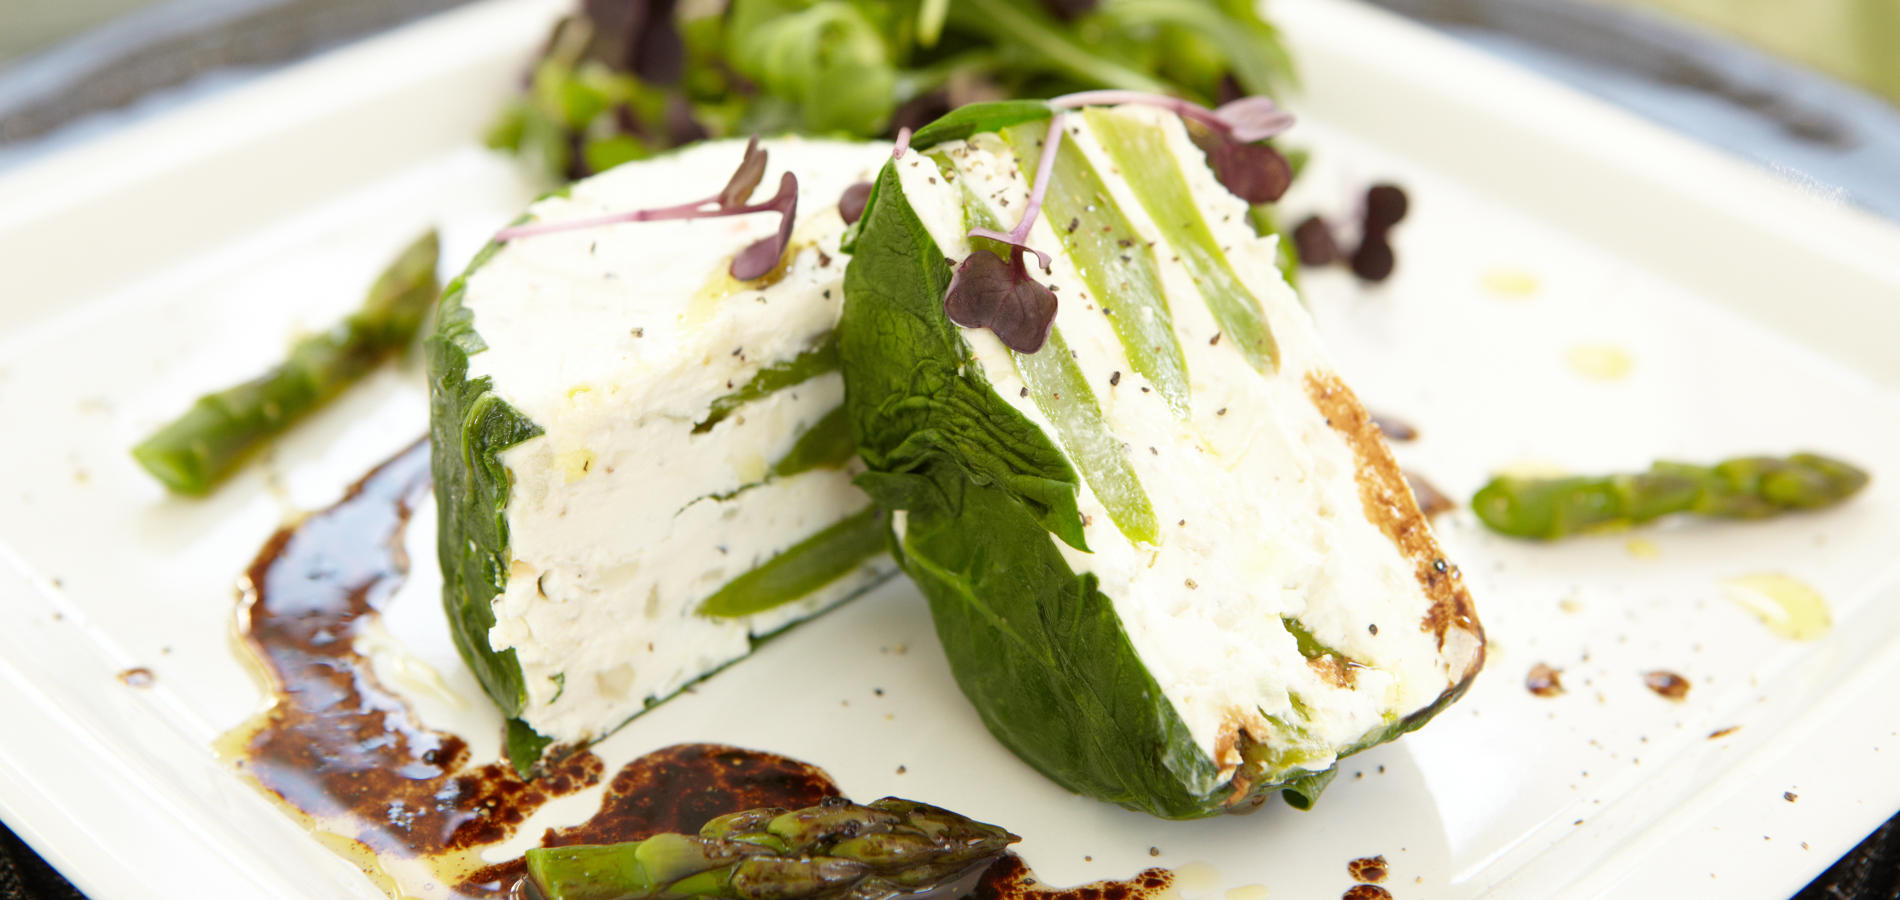 Asparagus and goats cheese terrine with mache and dill